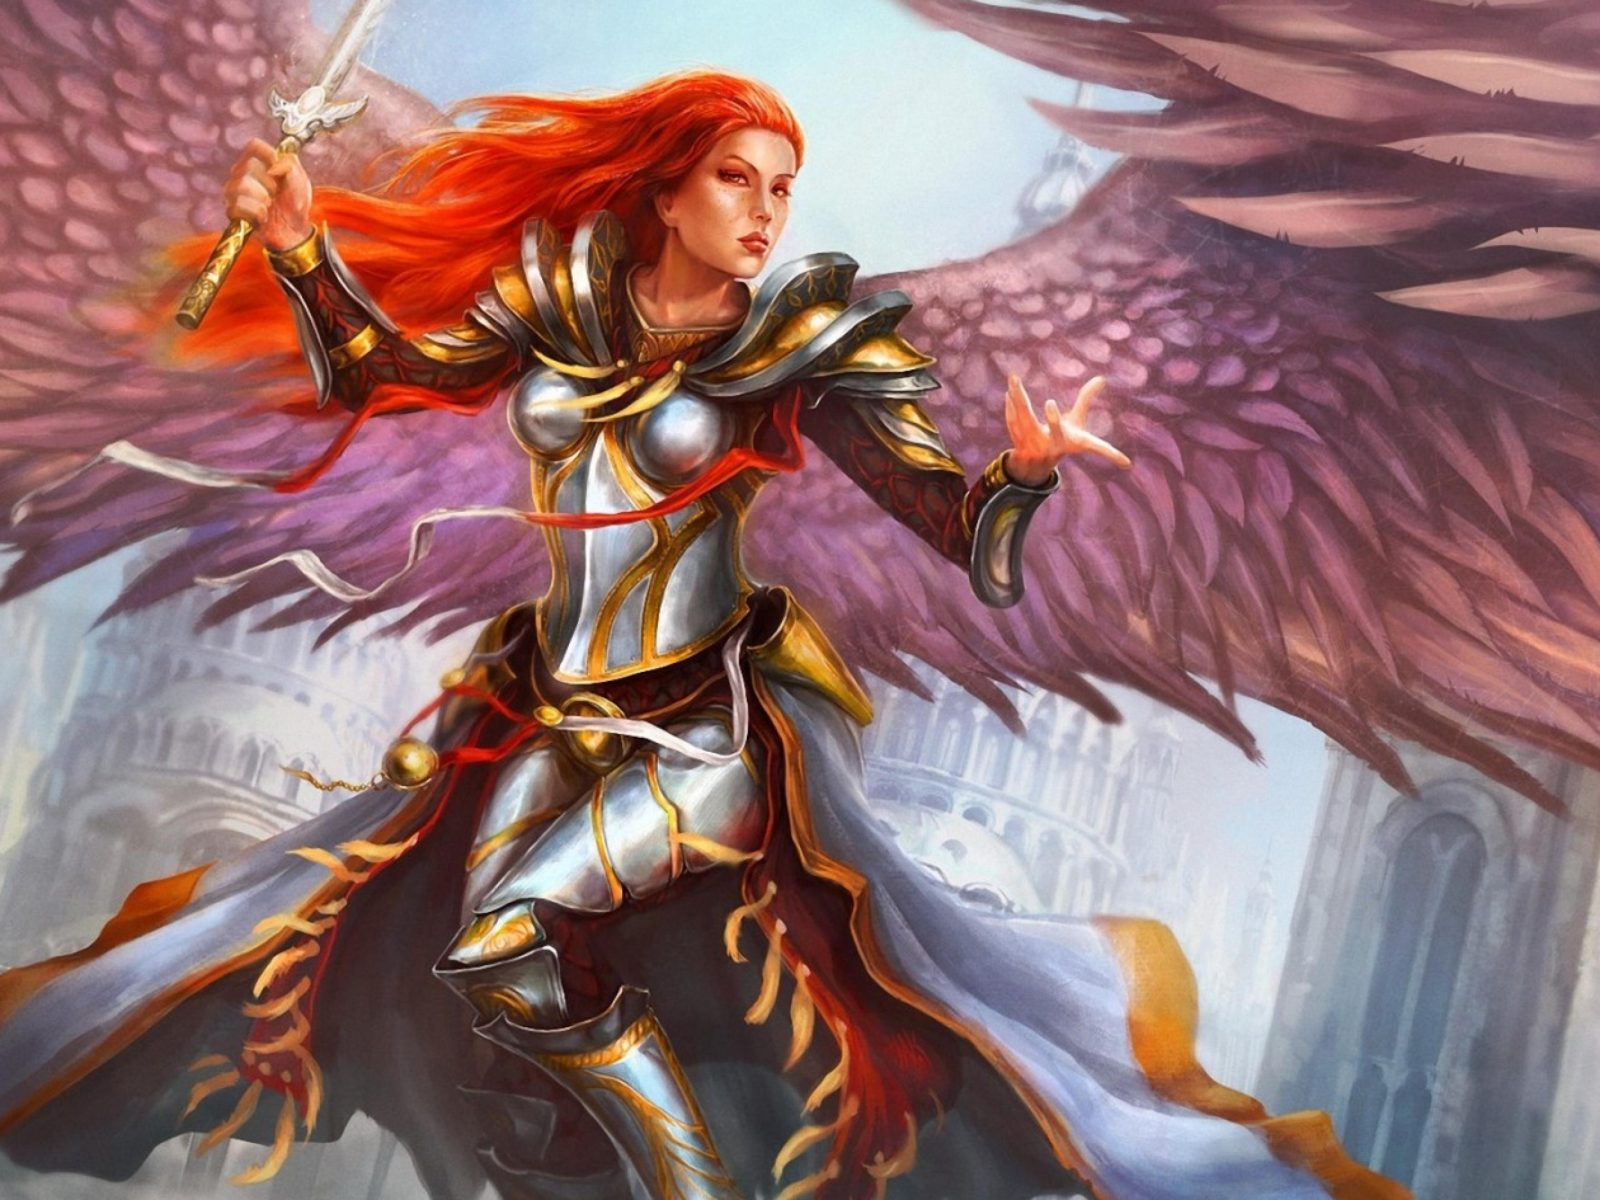 Girl Tablet Wallpapers Angel Redhead Fantasy Girl Feather Wings Ultra 3840x2160